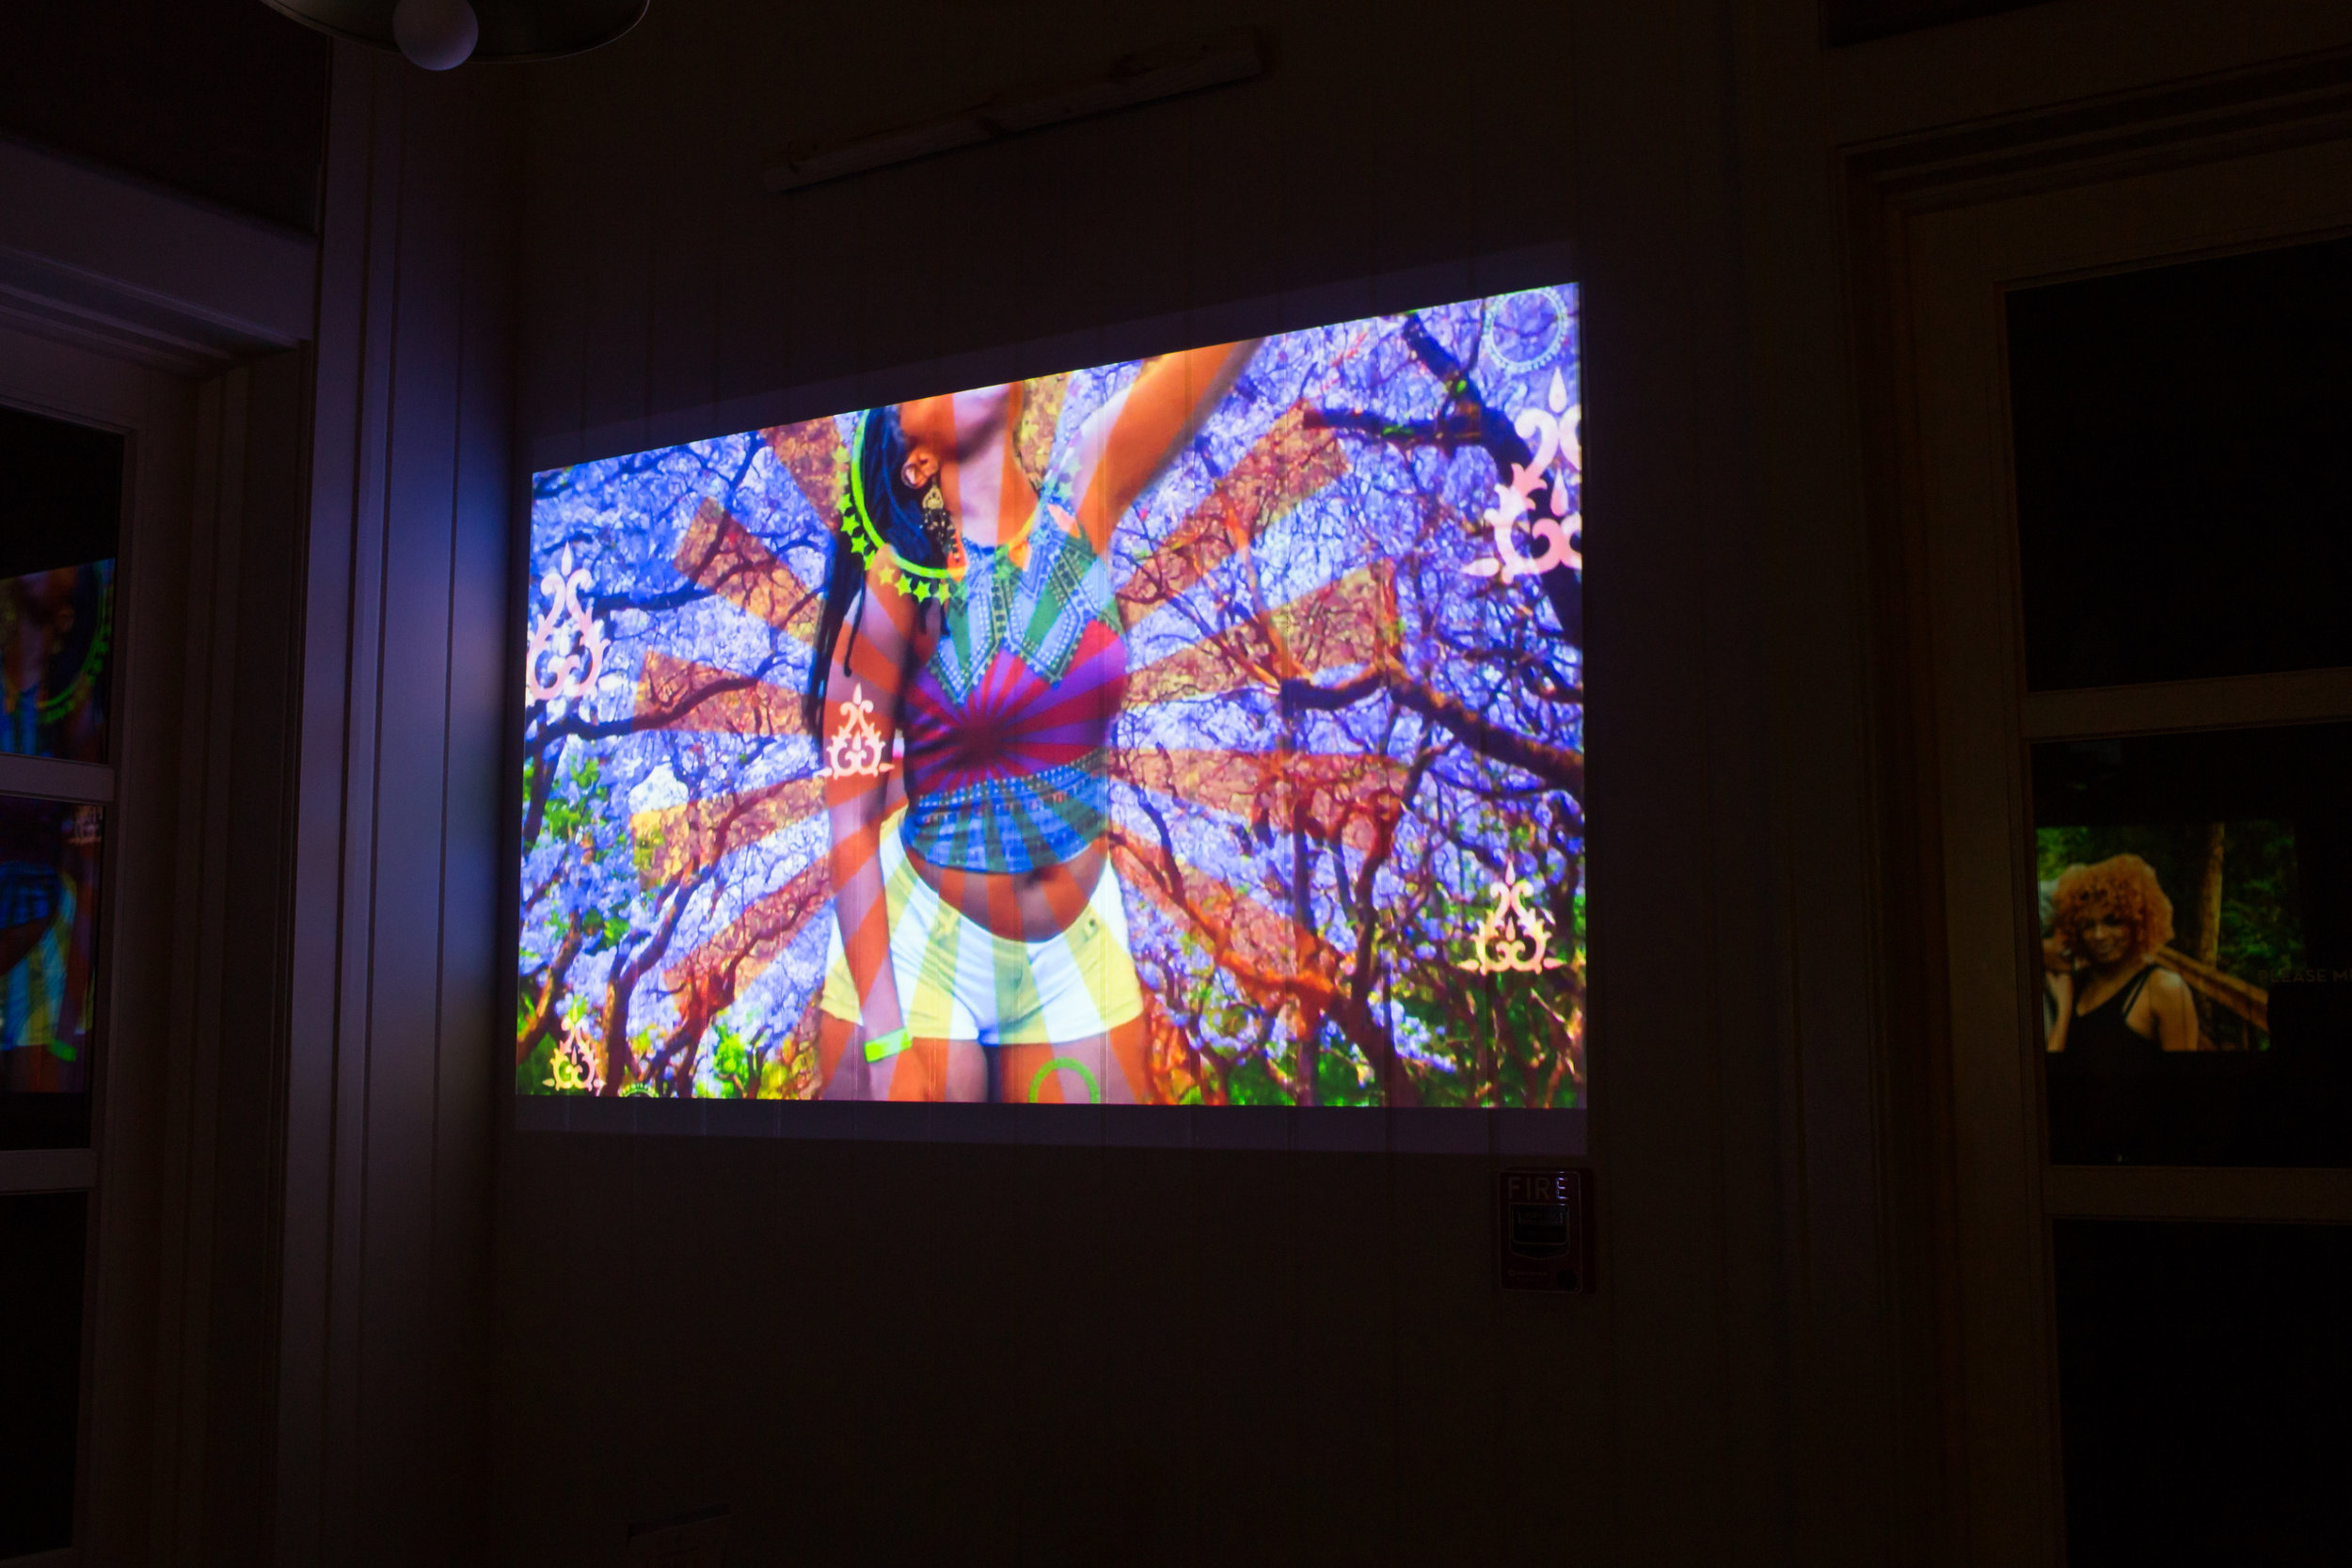 Spurgeonique Morley's recent GIF work projected in The Island House Cafe.